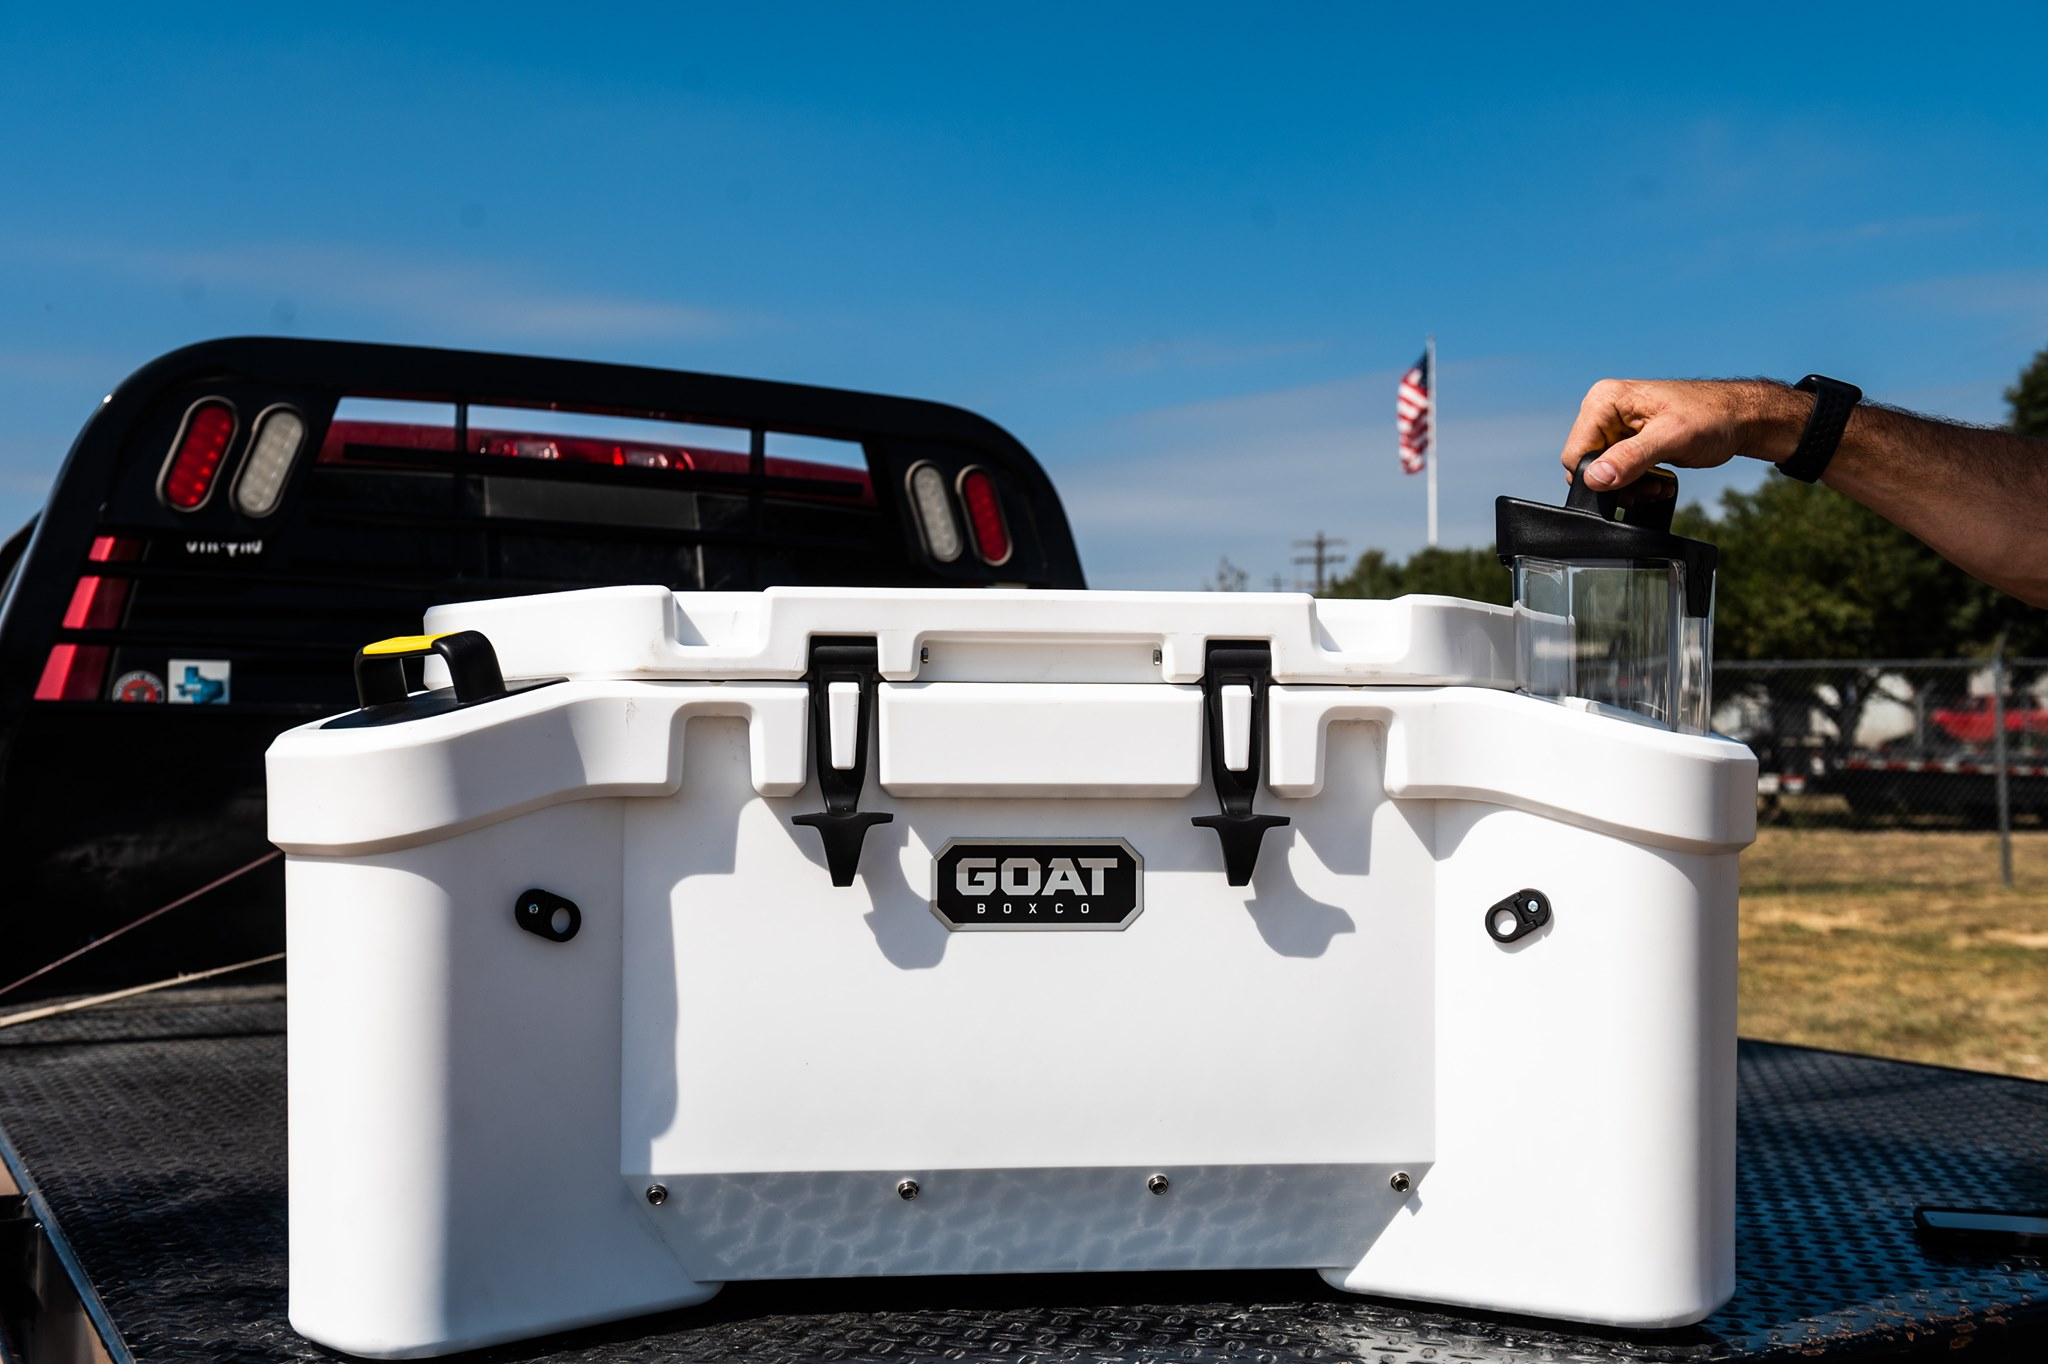 The Goat Hub 70 cooler comes with a storage twist